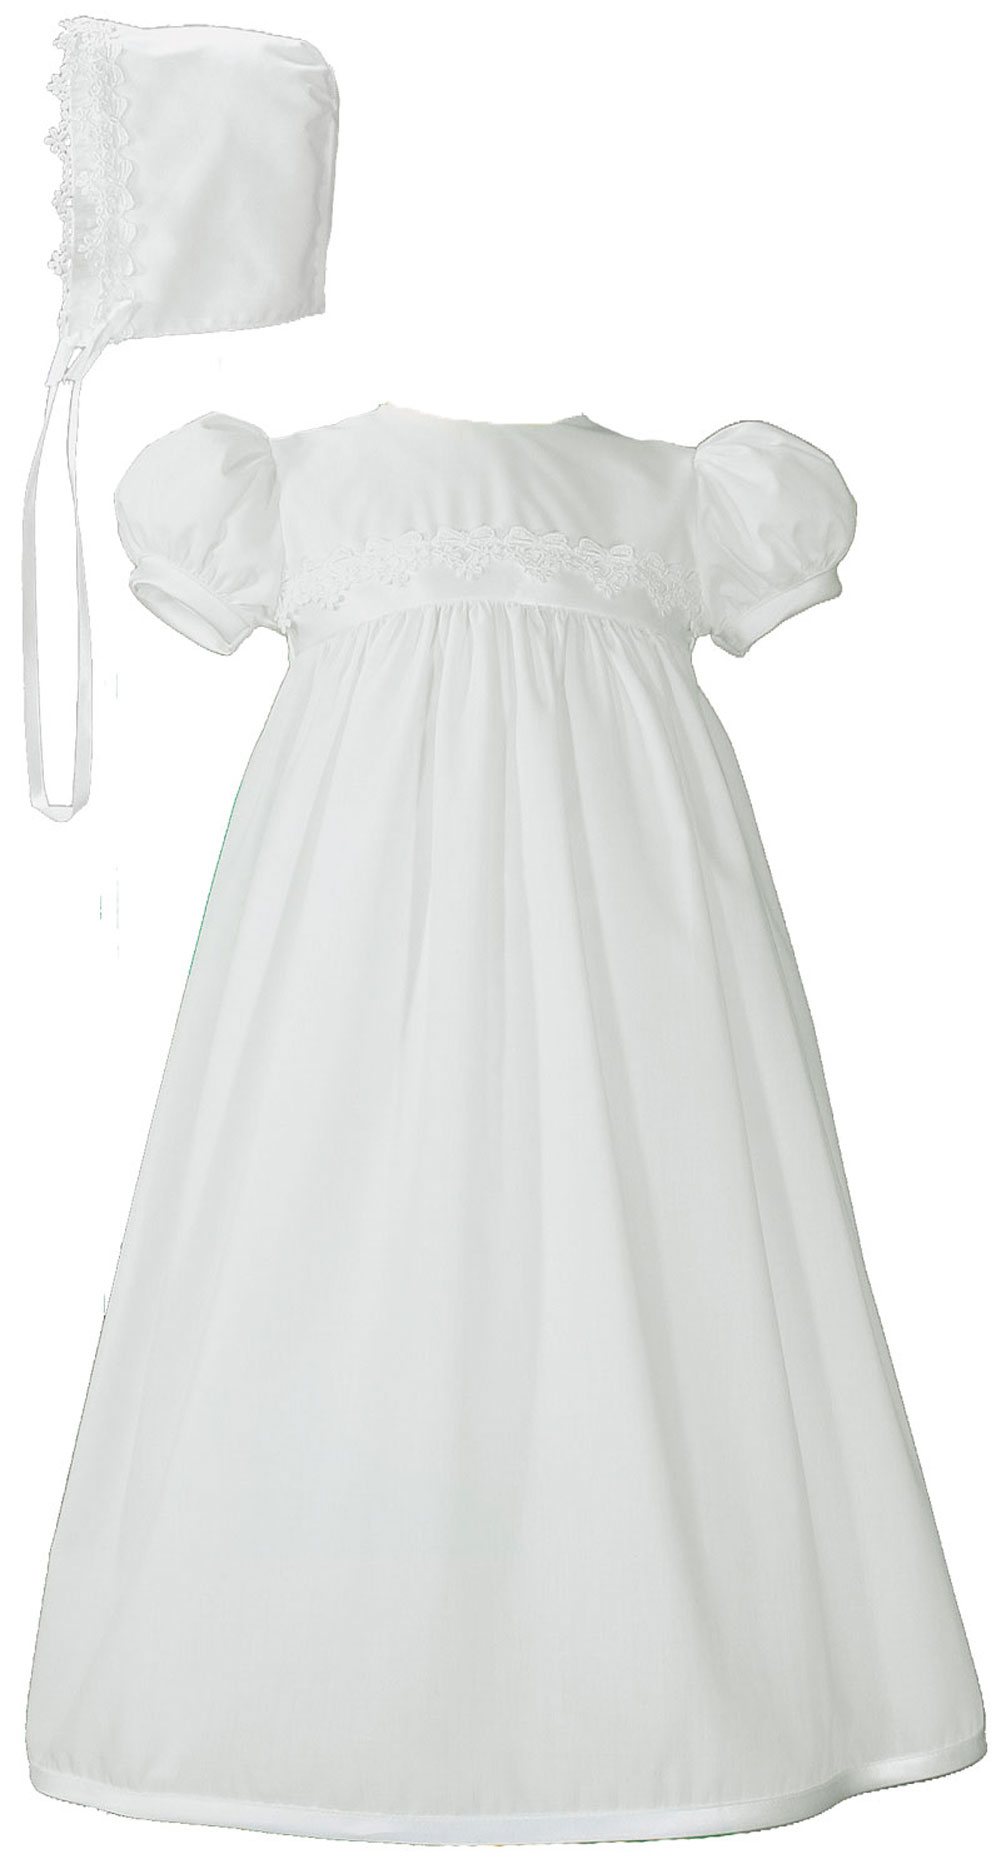 Girls White Polycotton Christening Baptism Gown with Lace Trim ...